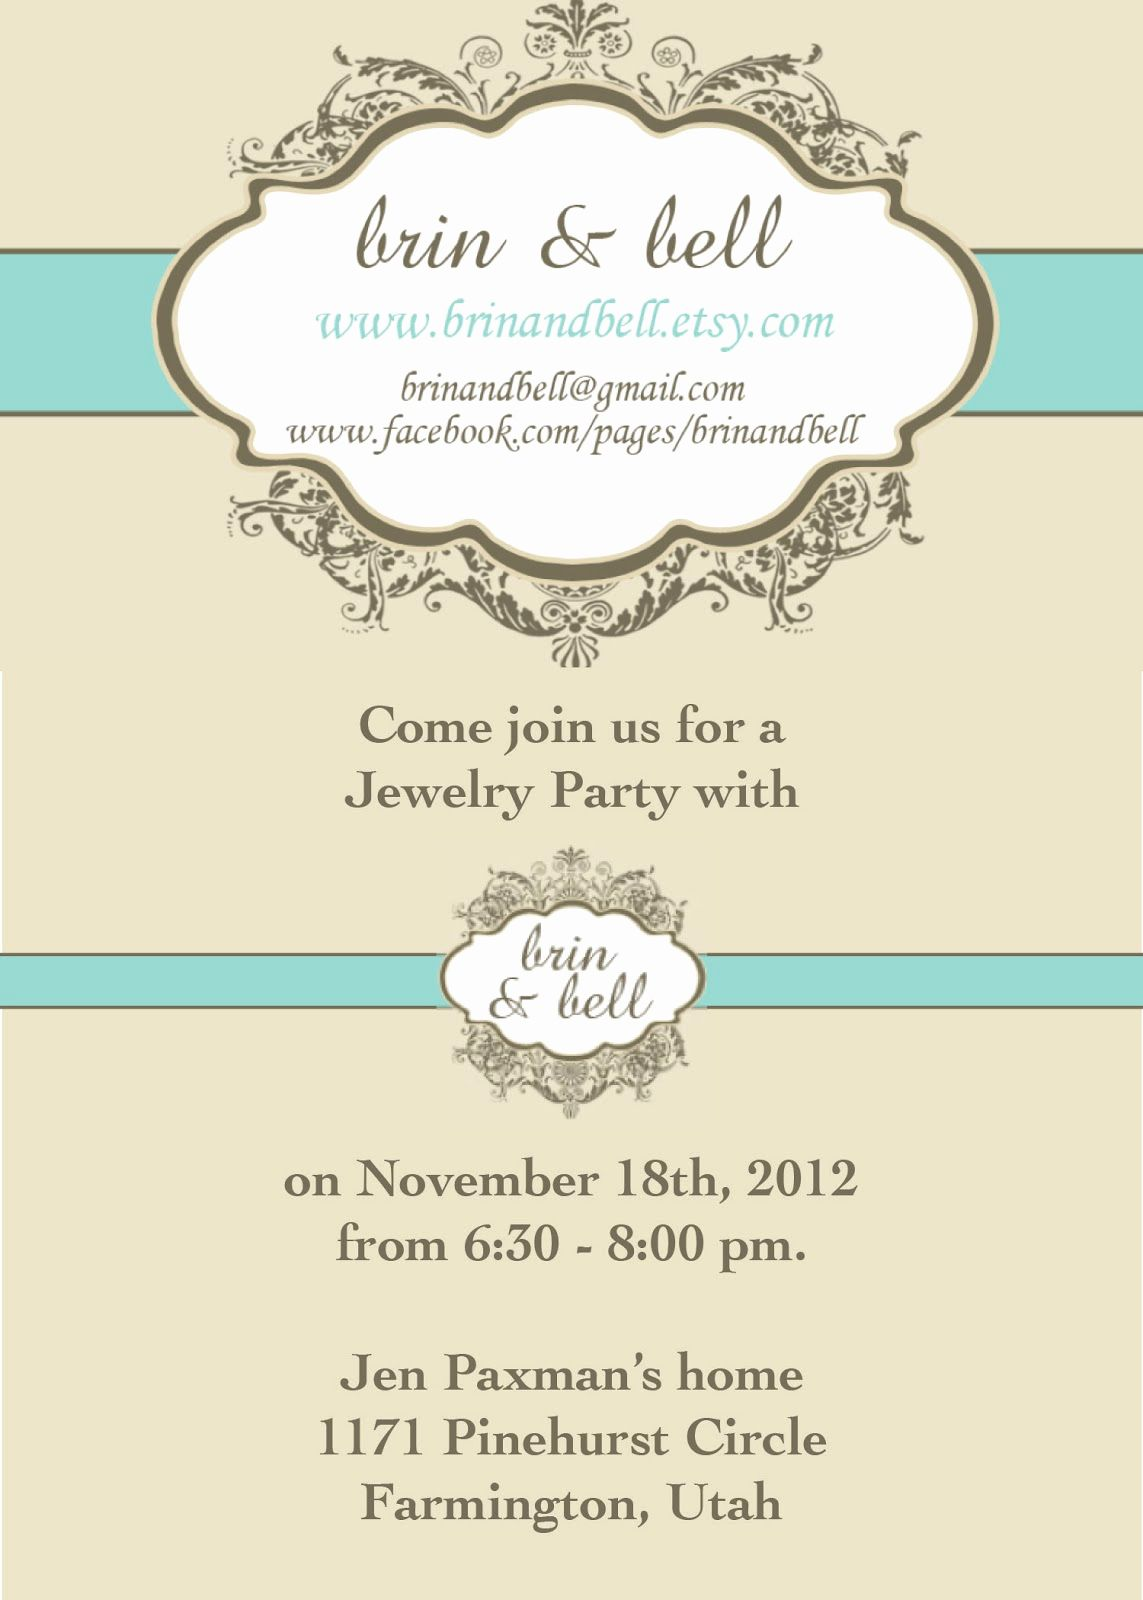 Jewelry Party Invitation  Party invite template, Jewelry party